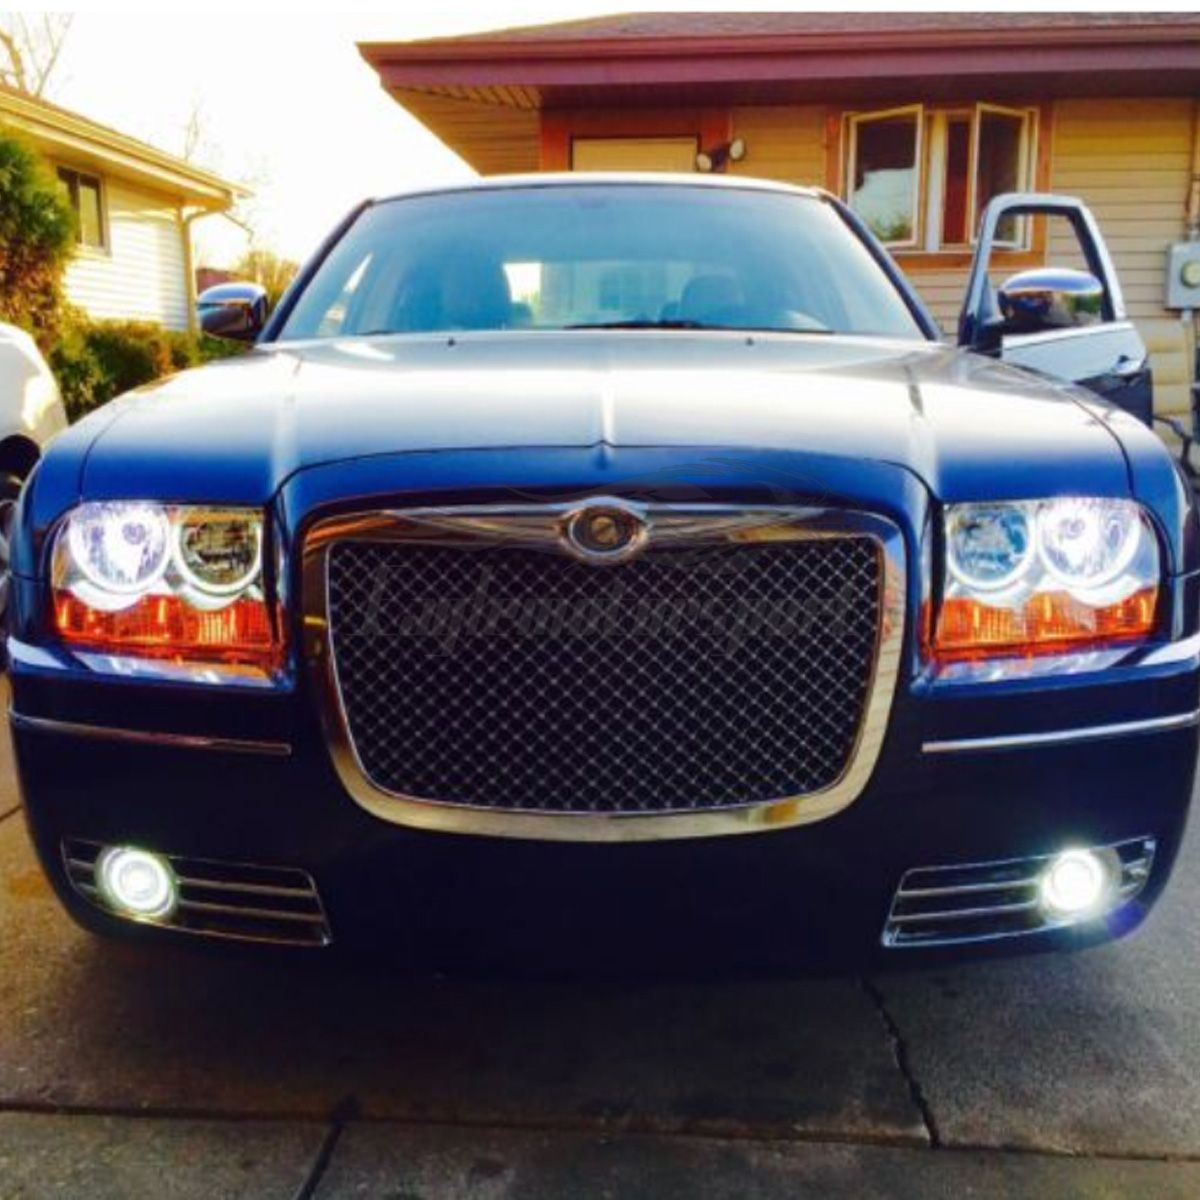 Black 2005 2006 2007 2008 2009 2010 Chrysler 300c: [CCFL Halo] 2005 2006 2007 2008 2009 2010 Chrysler 300